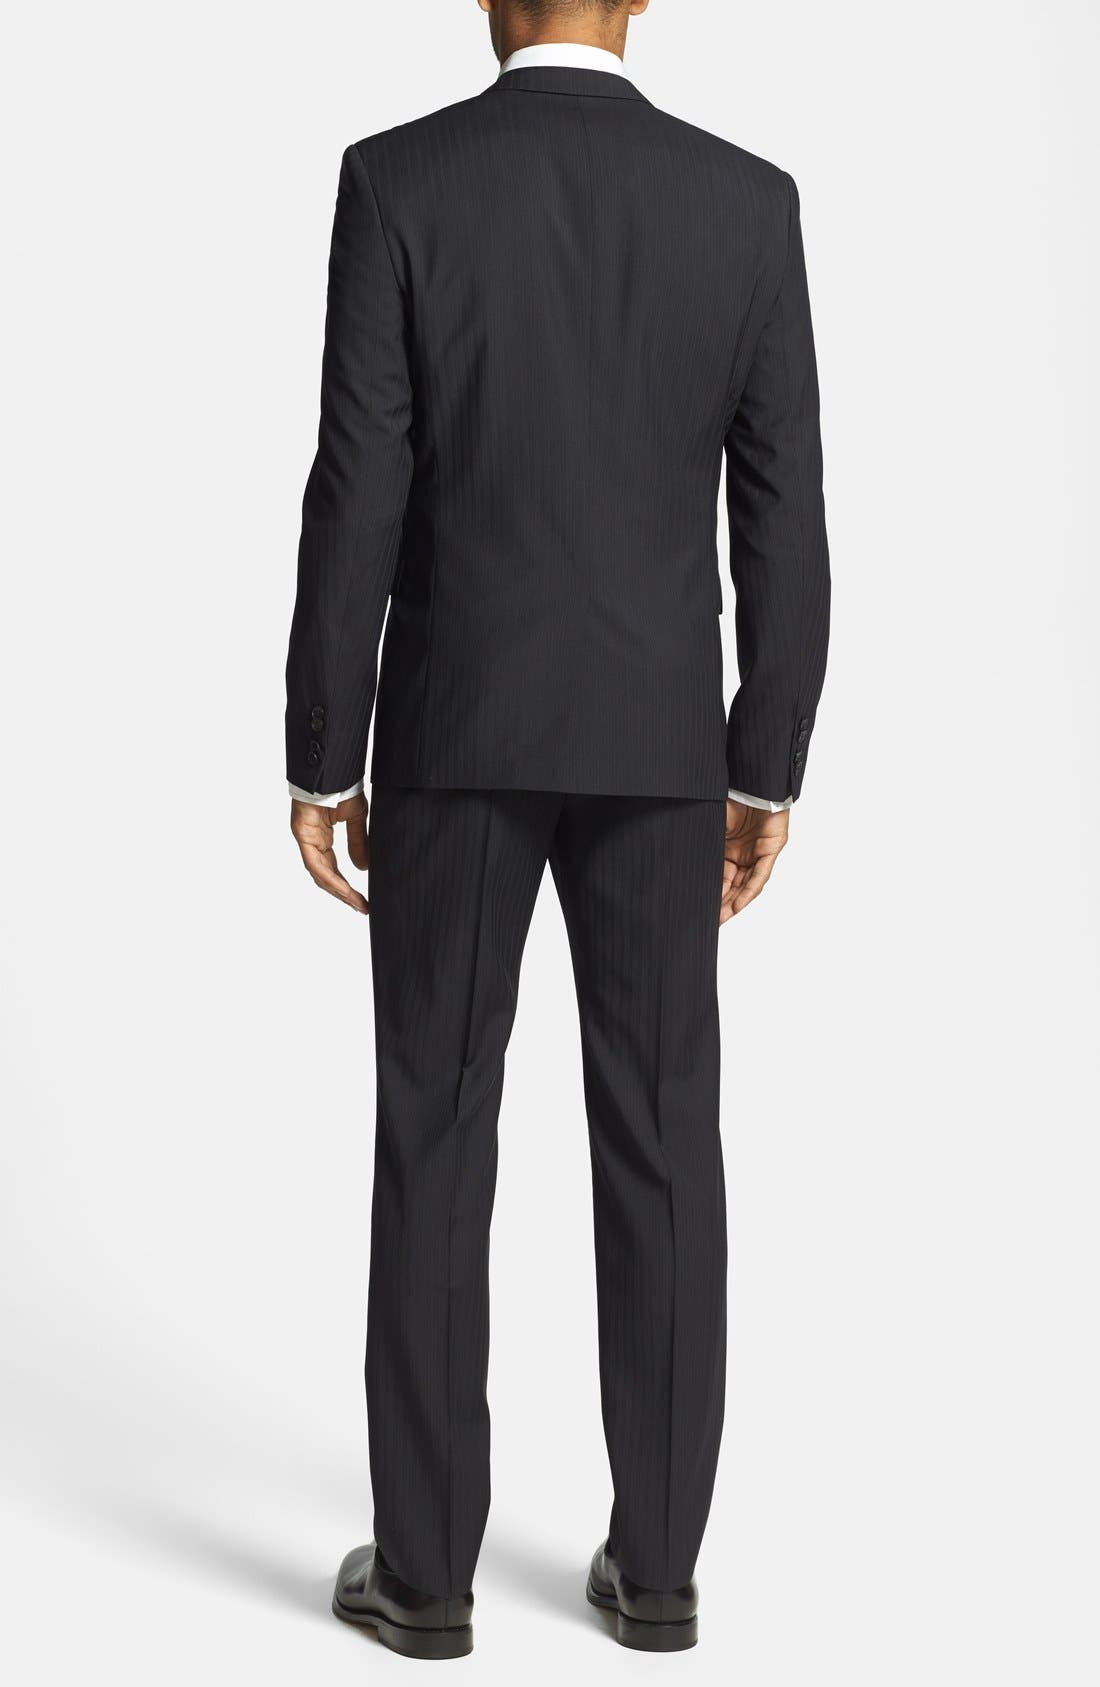 BOSS HUGO BOSS 'Adris/Heibo' Extra Trim Fit Stripe Suit,                             Alternate thumbnail 5, color,                             001